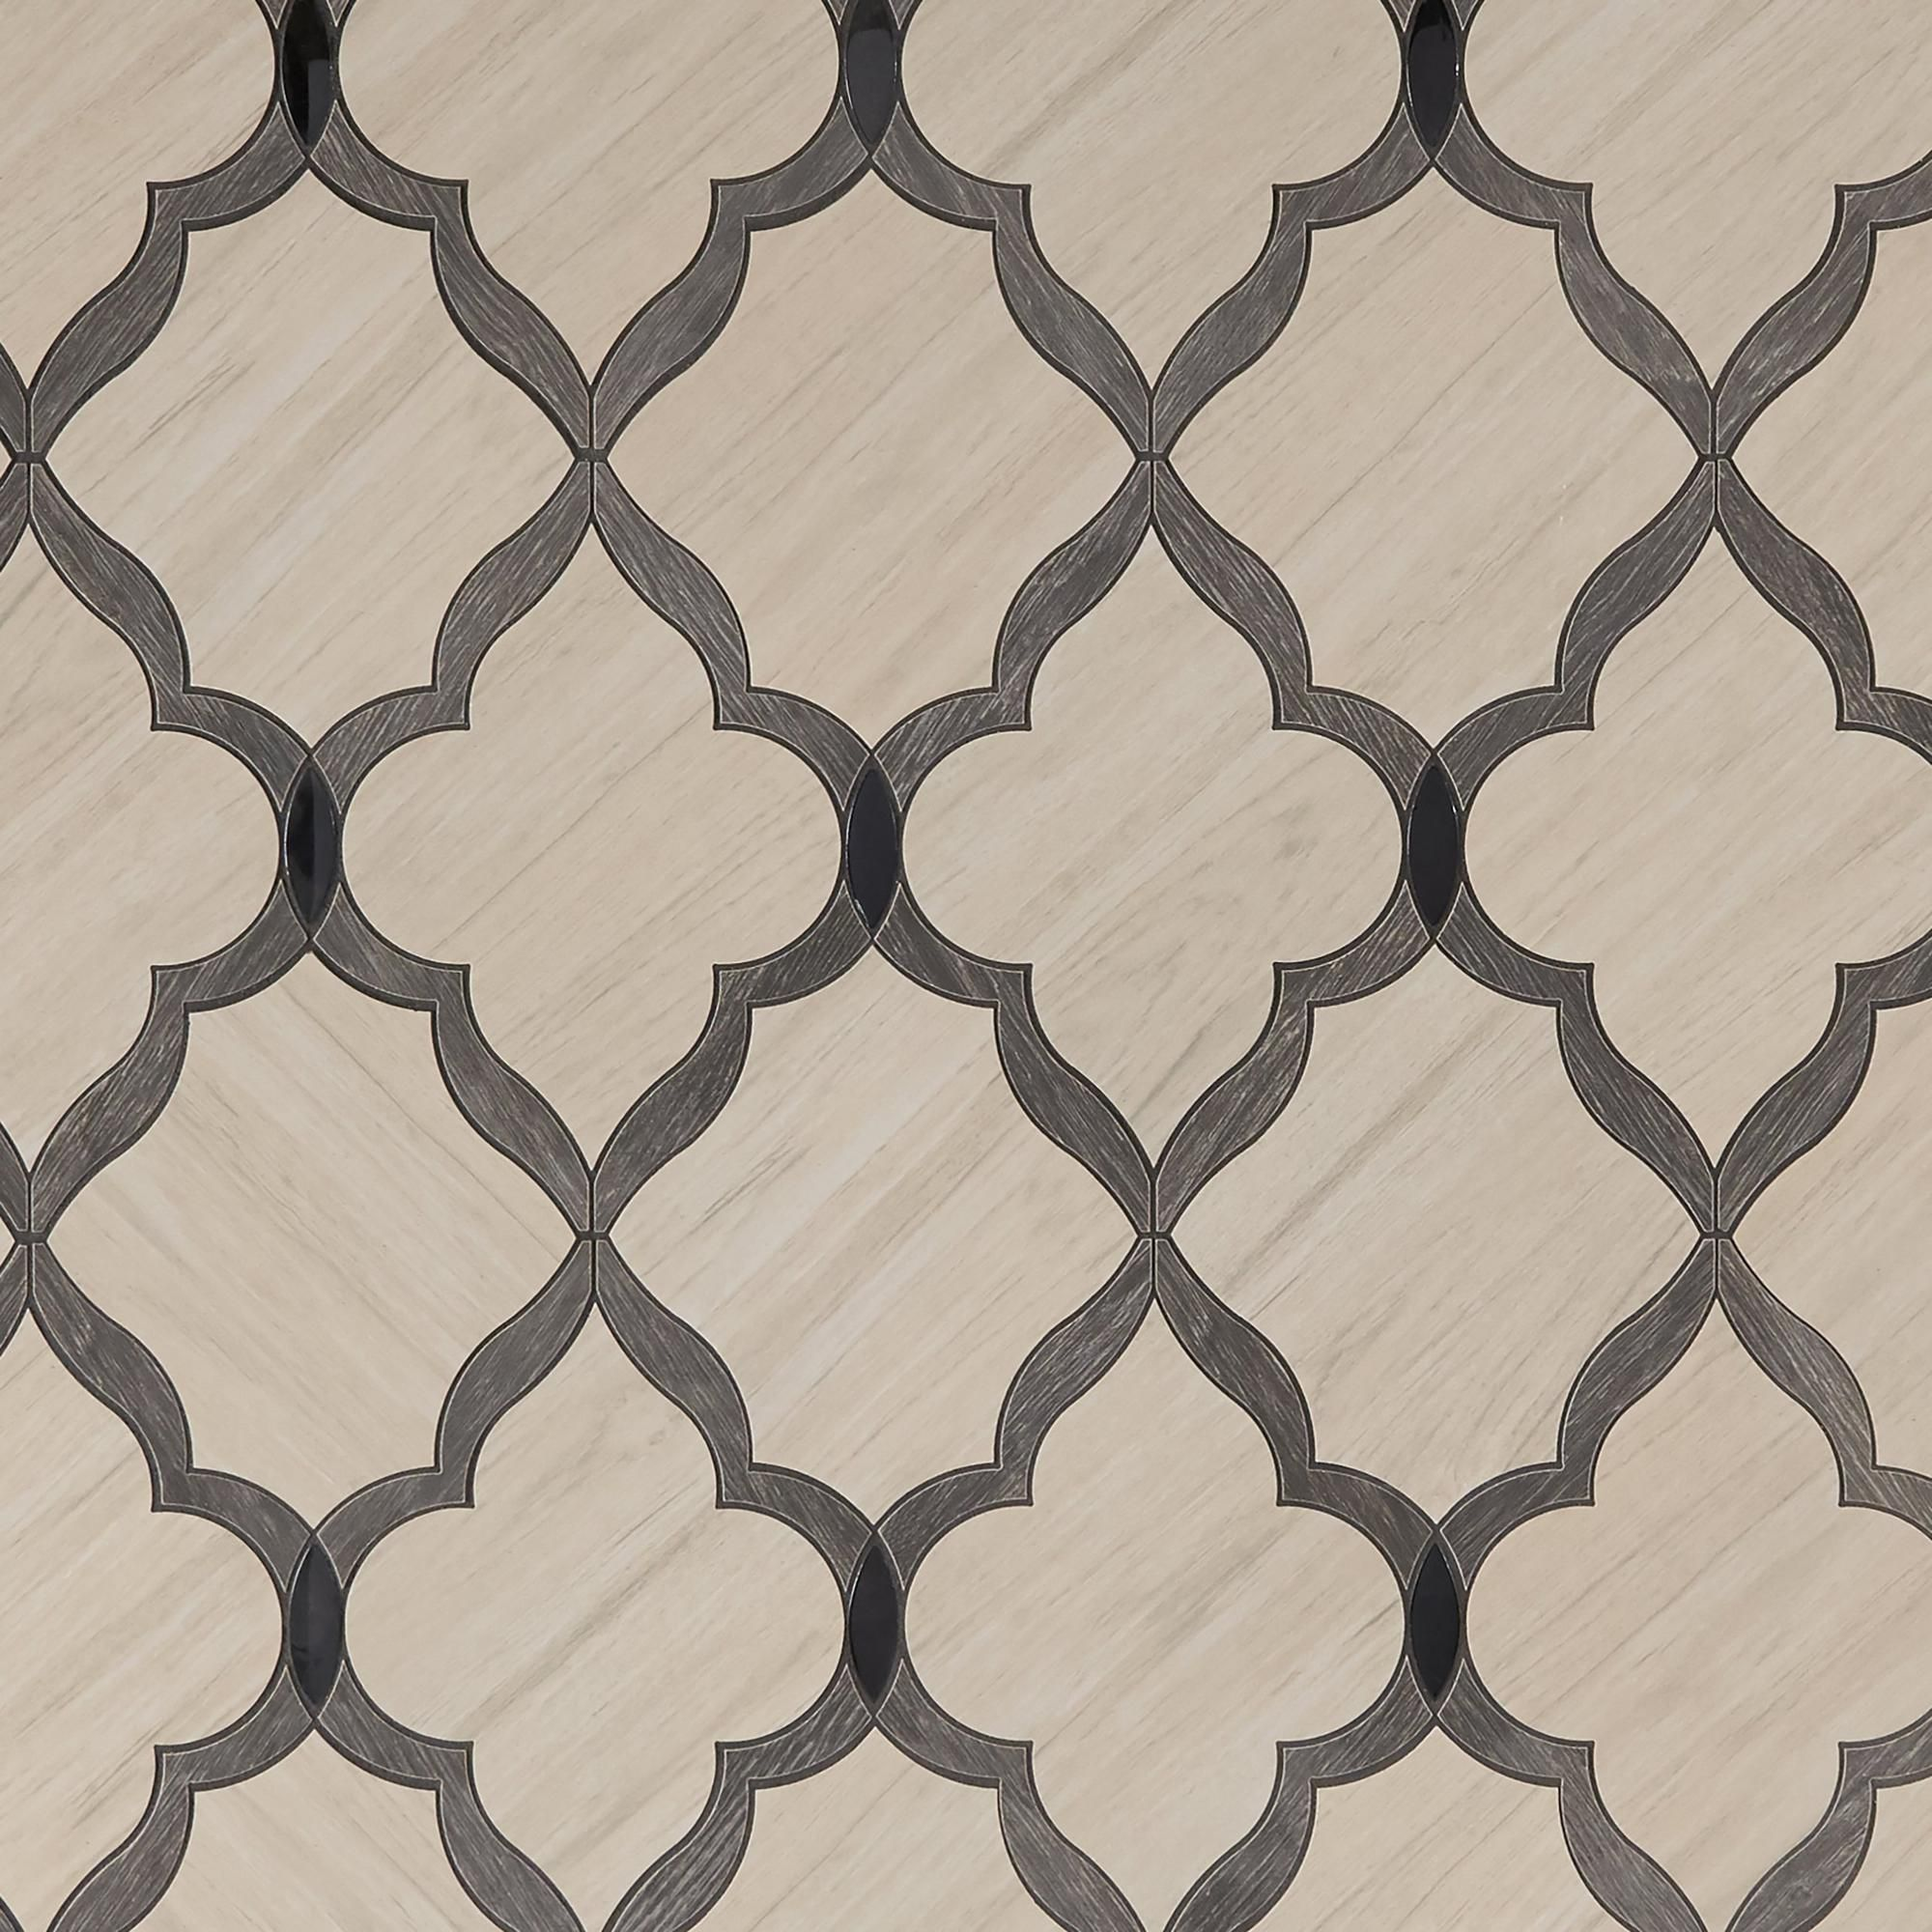 Beacon hill arabesque water jet cut porcelain mosaic mosaics beacon hill arabesque water jet cut porcelain mosaic 15in x 11in 100249309 dailygadgetfo Gallery